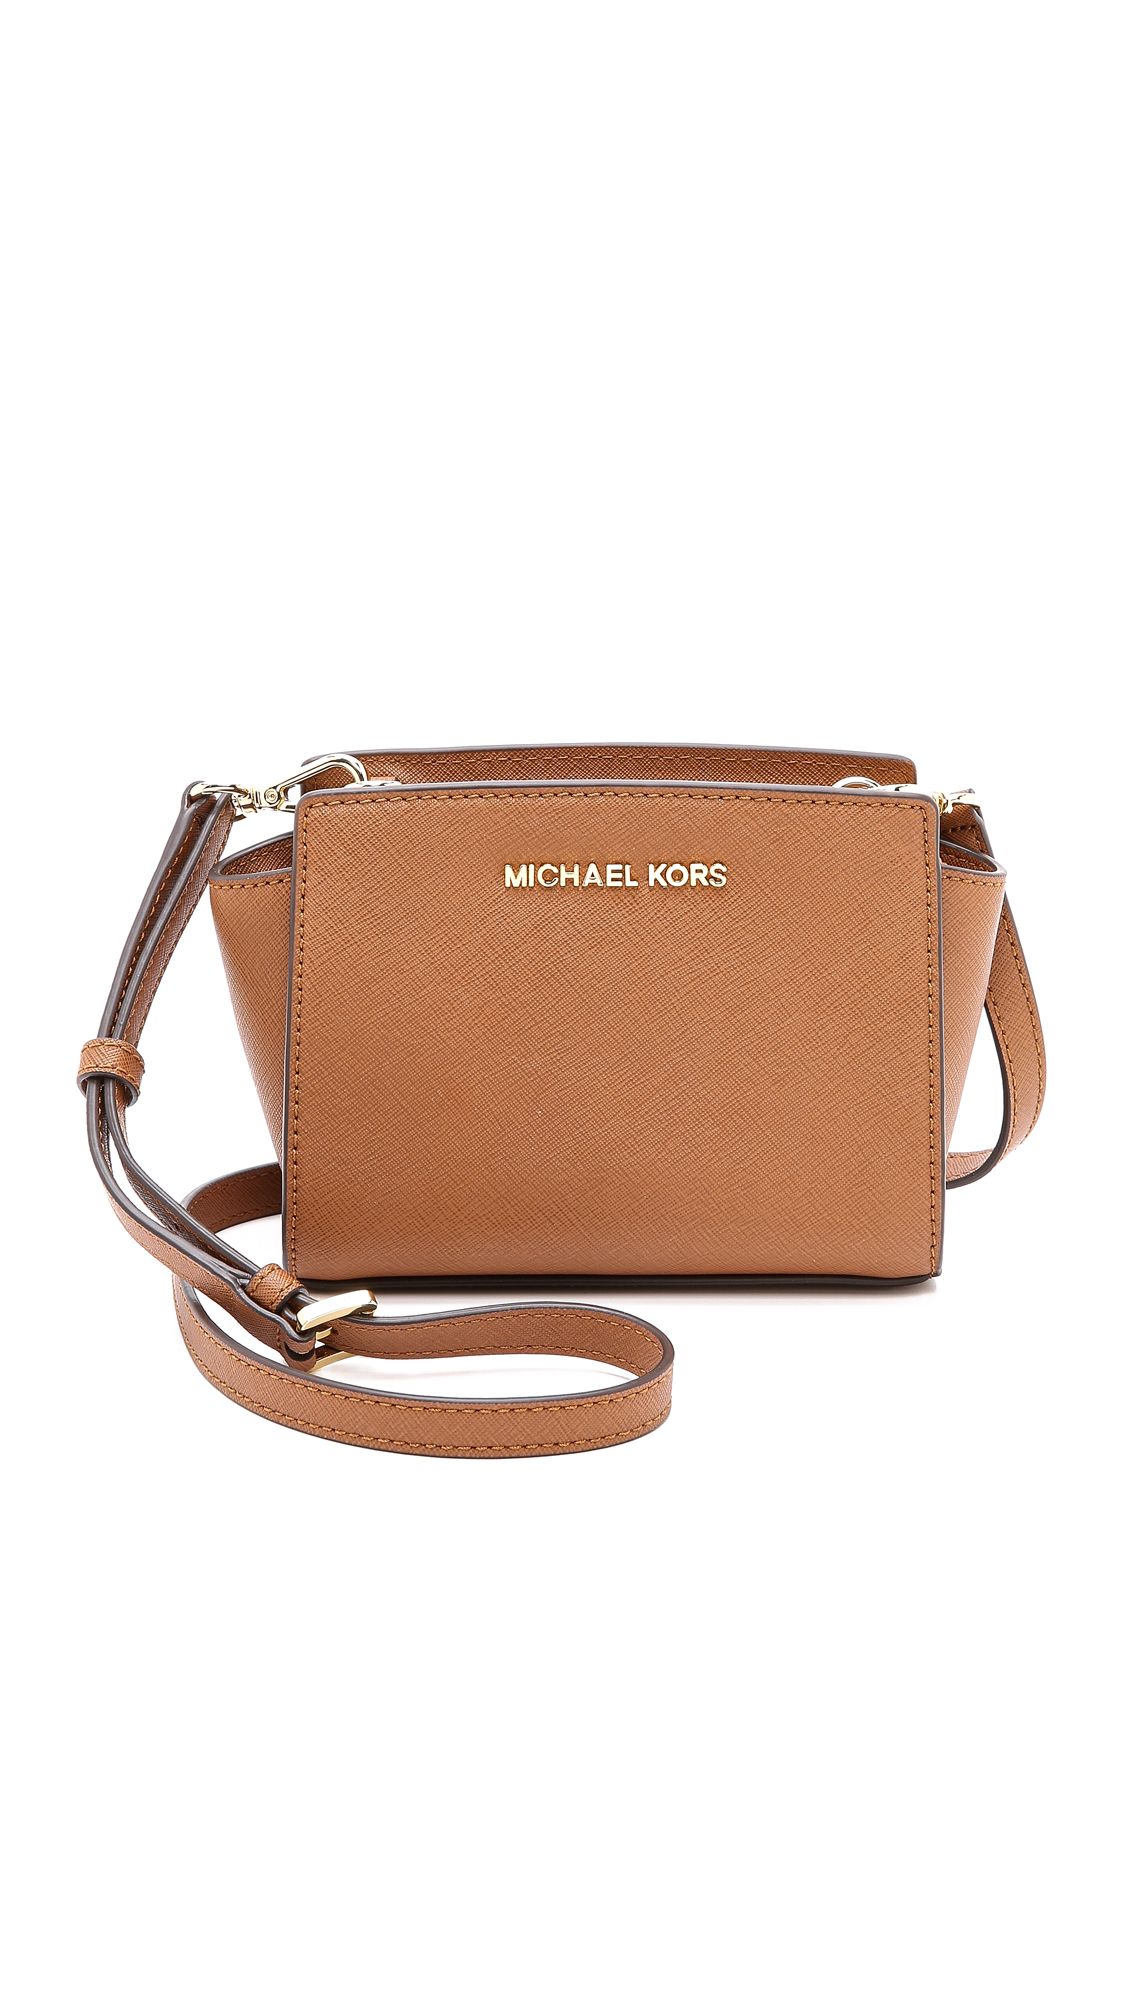 72cbc792e68dd ... kors selma handbag 61cbd 63eca  top quality gallery. previously sold at  shopbop womens leather messenger bags womens michael by michael